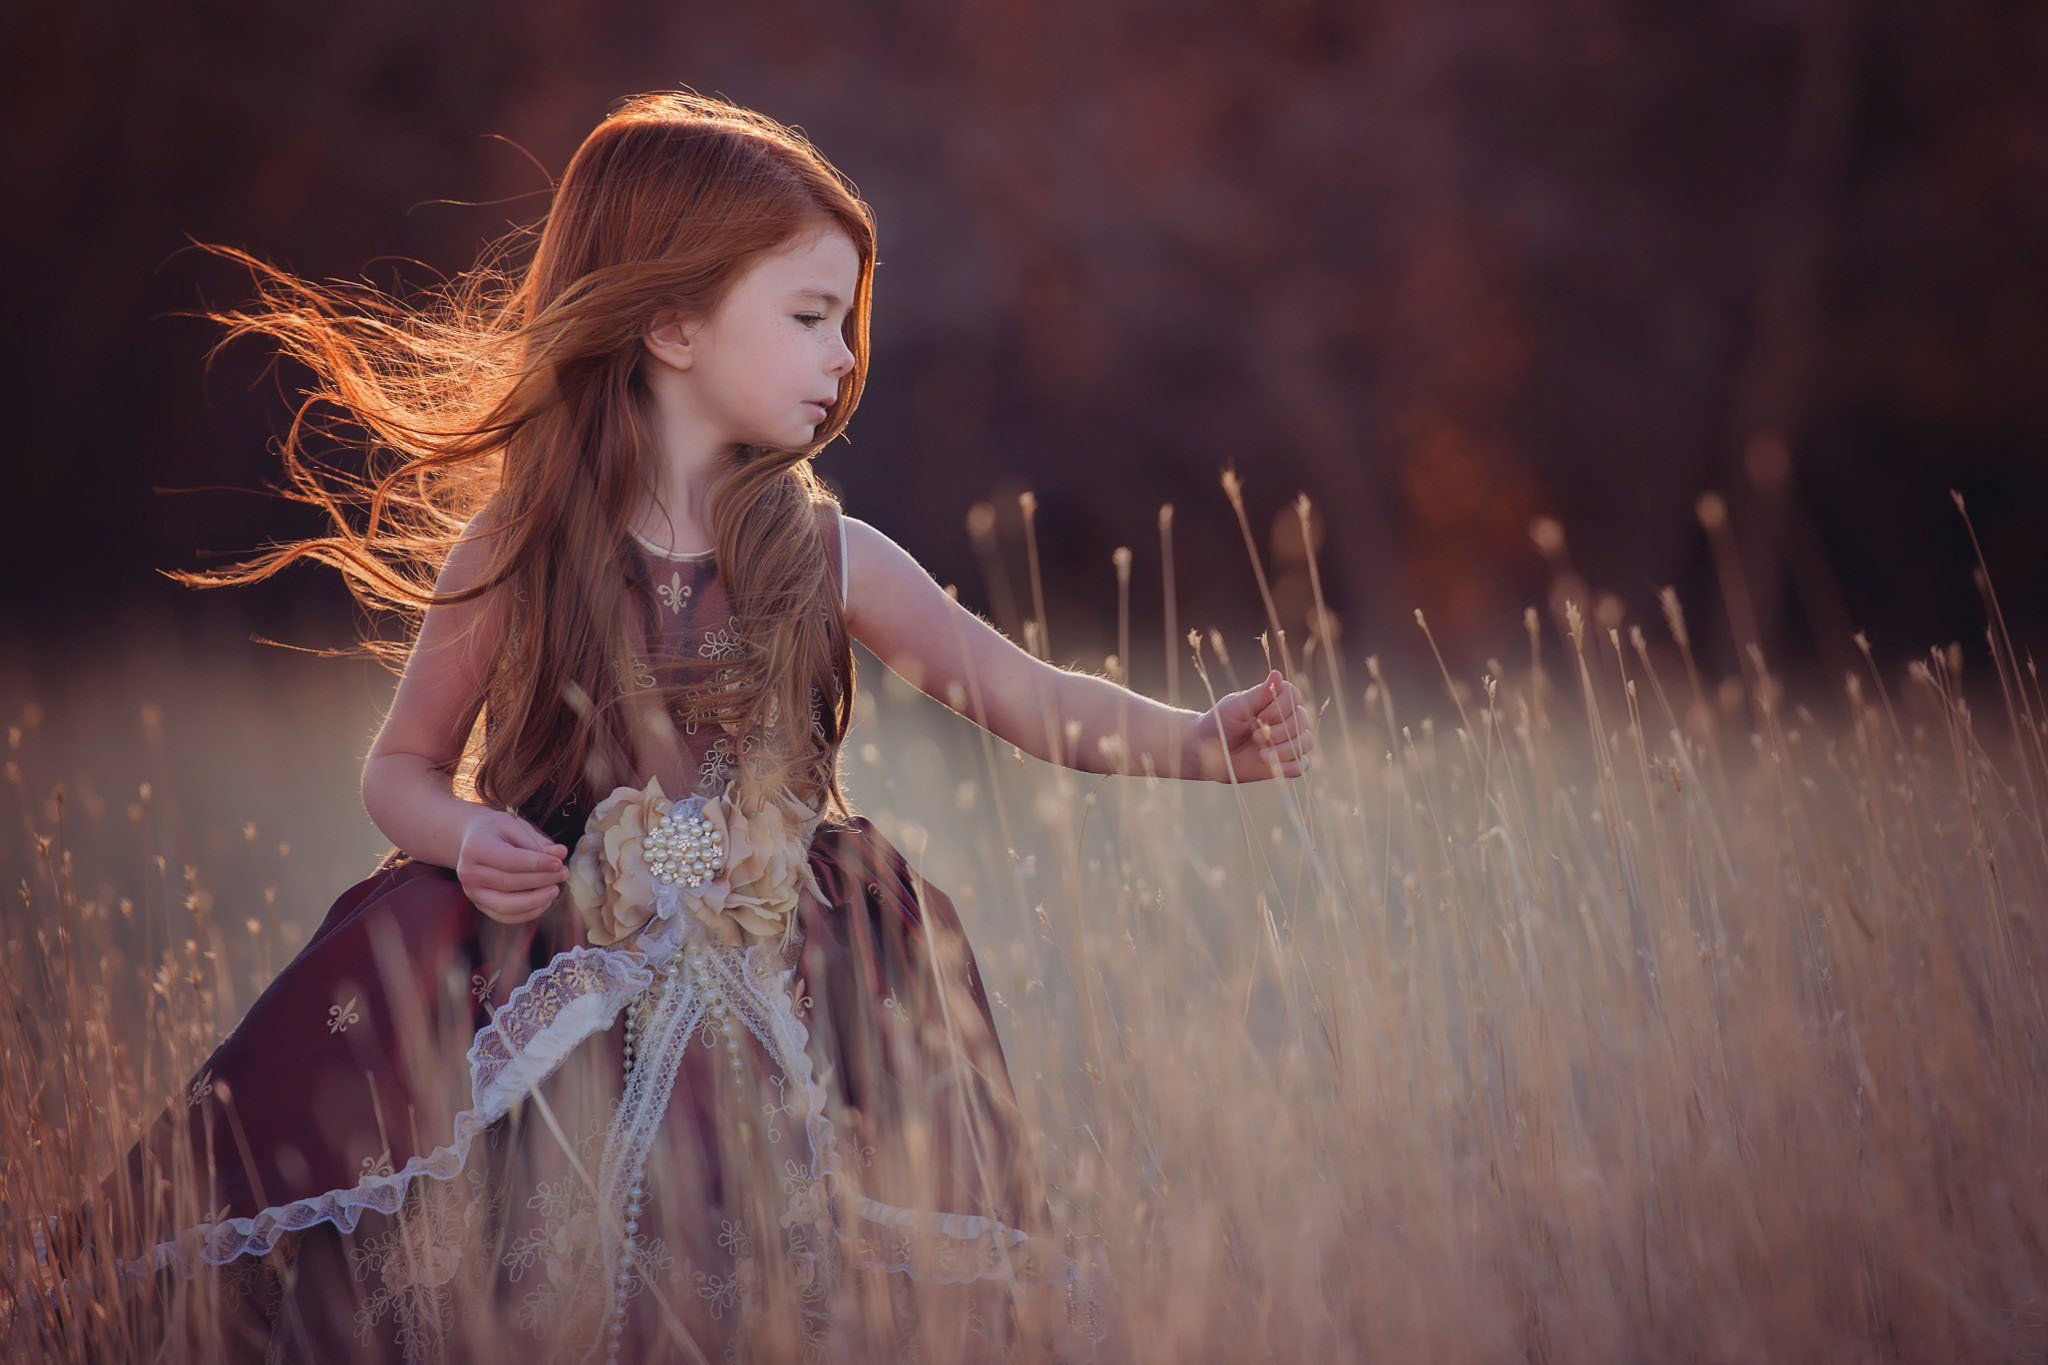 children beauty beautiful angel cute girl long hair wallpaper